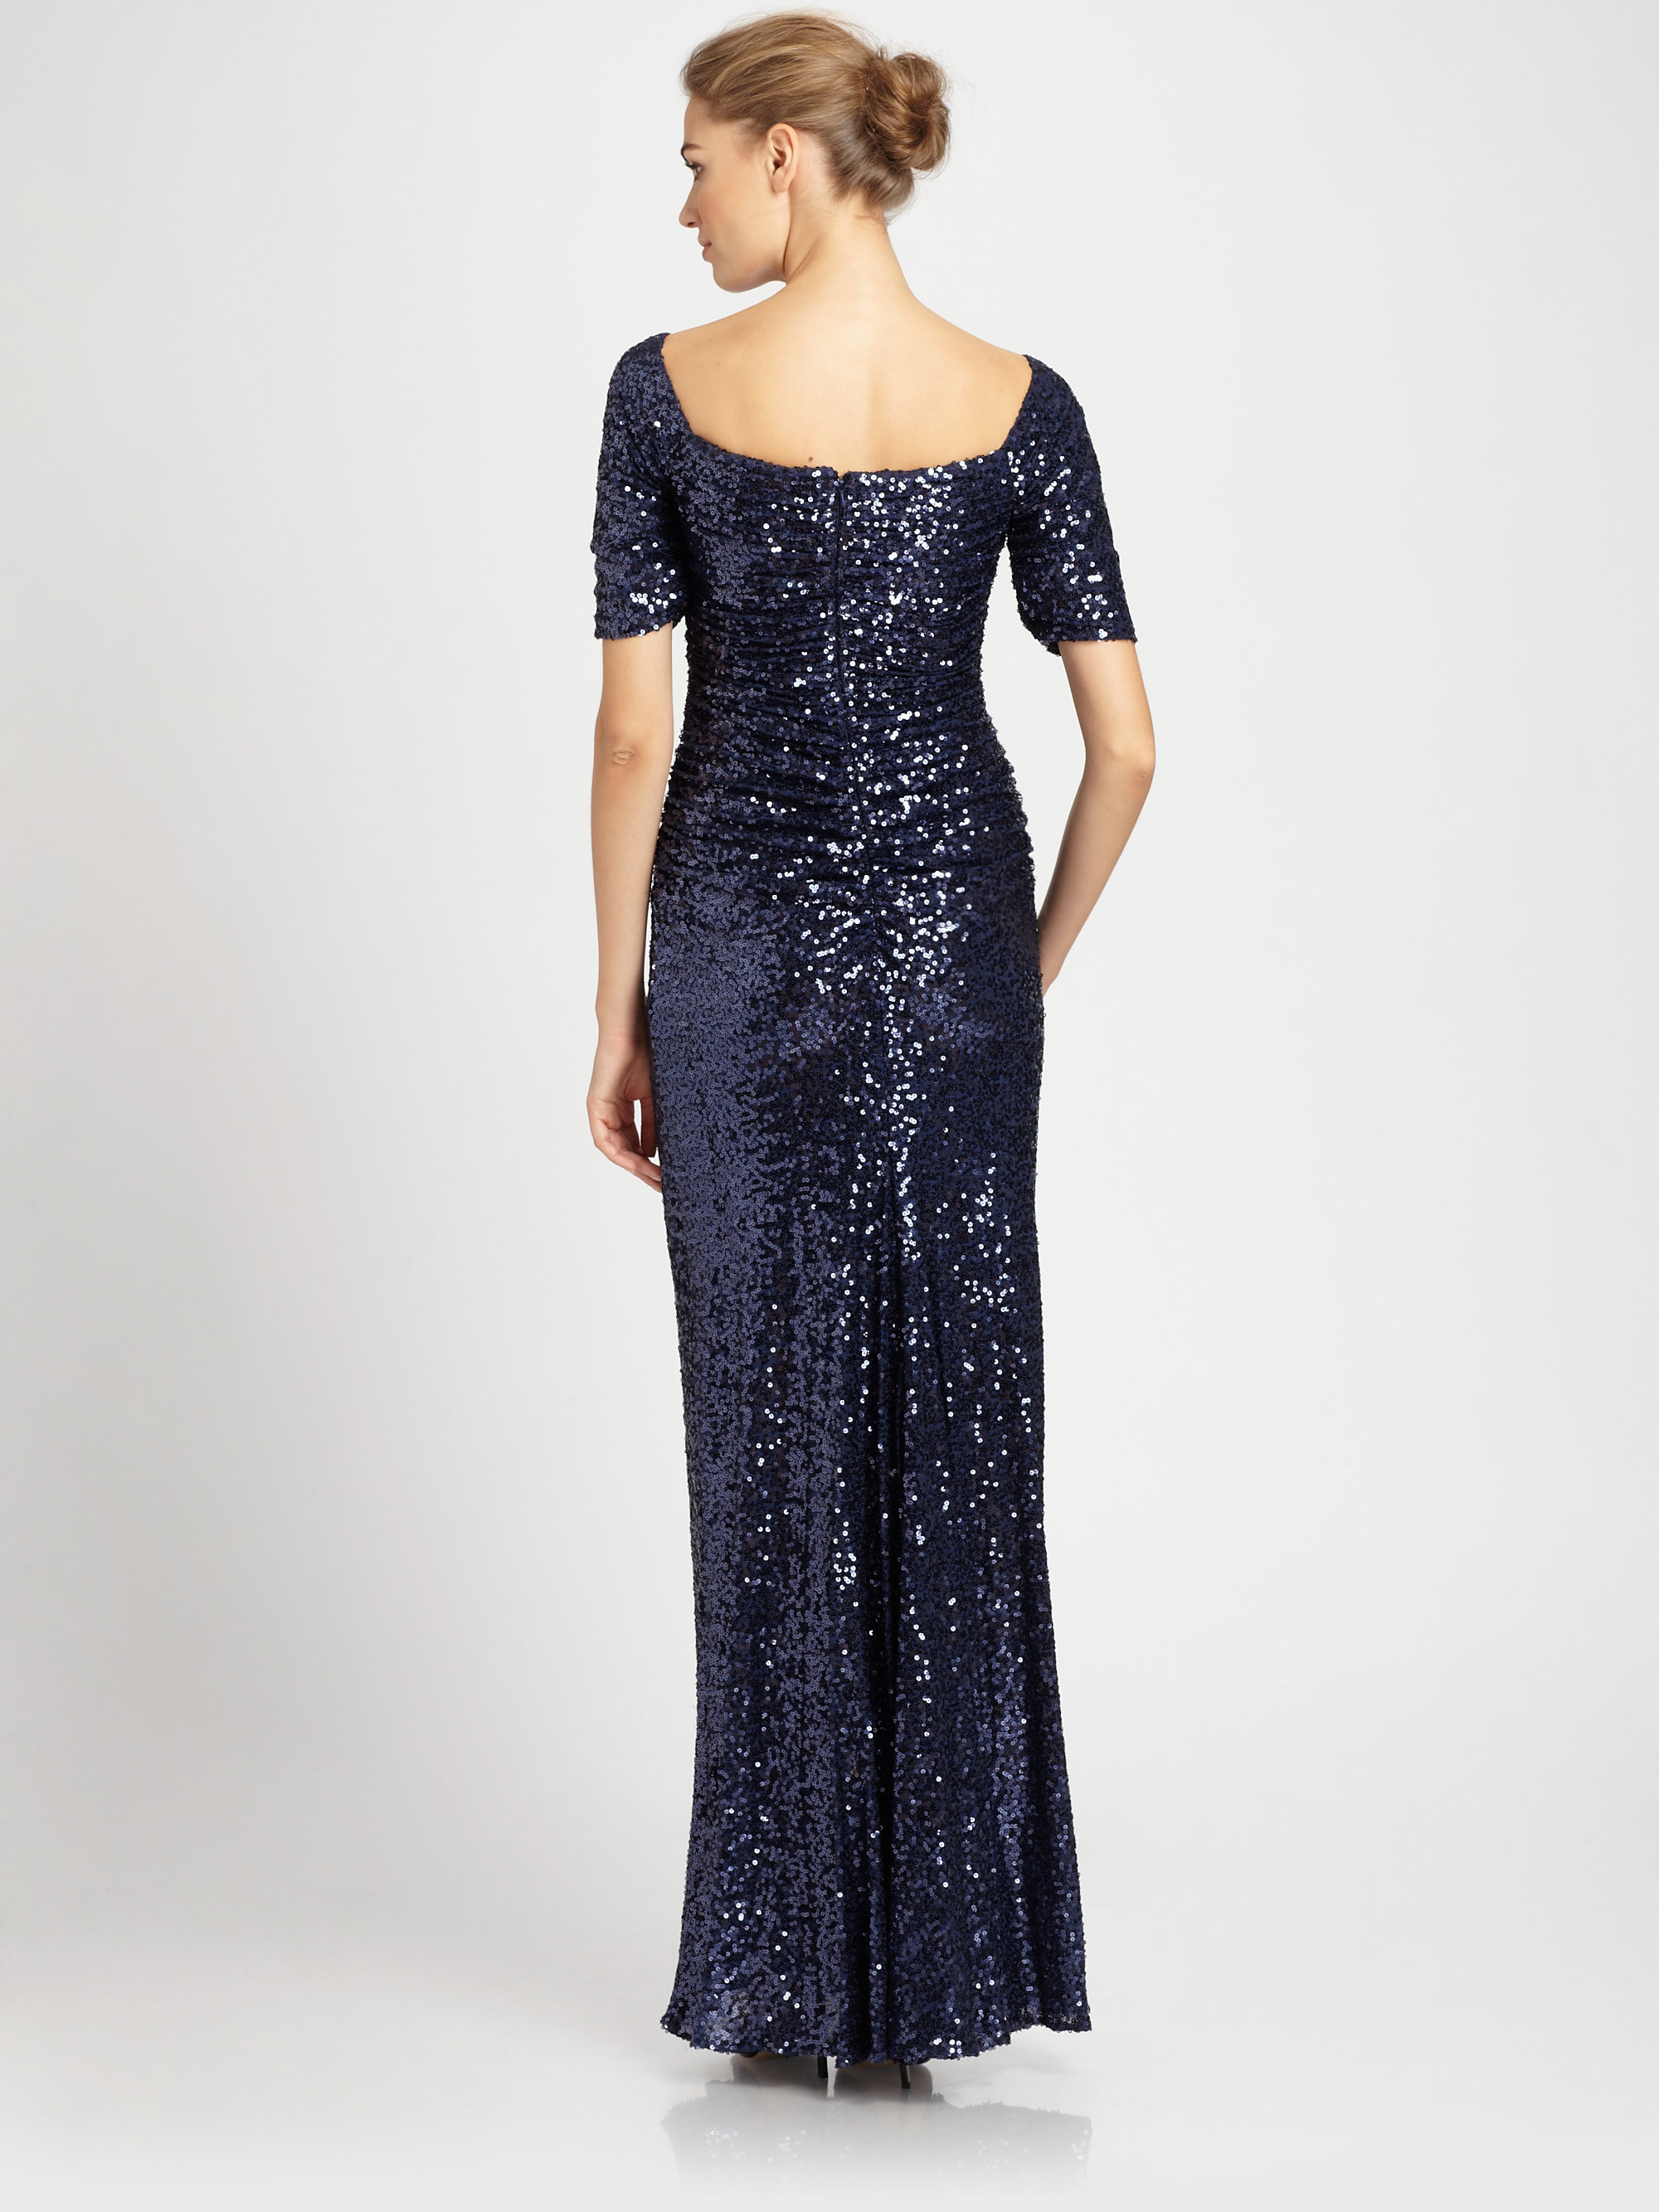 Badgley mischka sequined gown in blue navy lyst for Badgley mischka store nyc